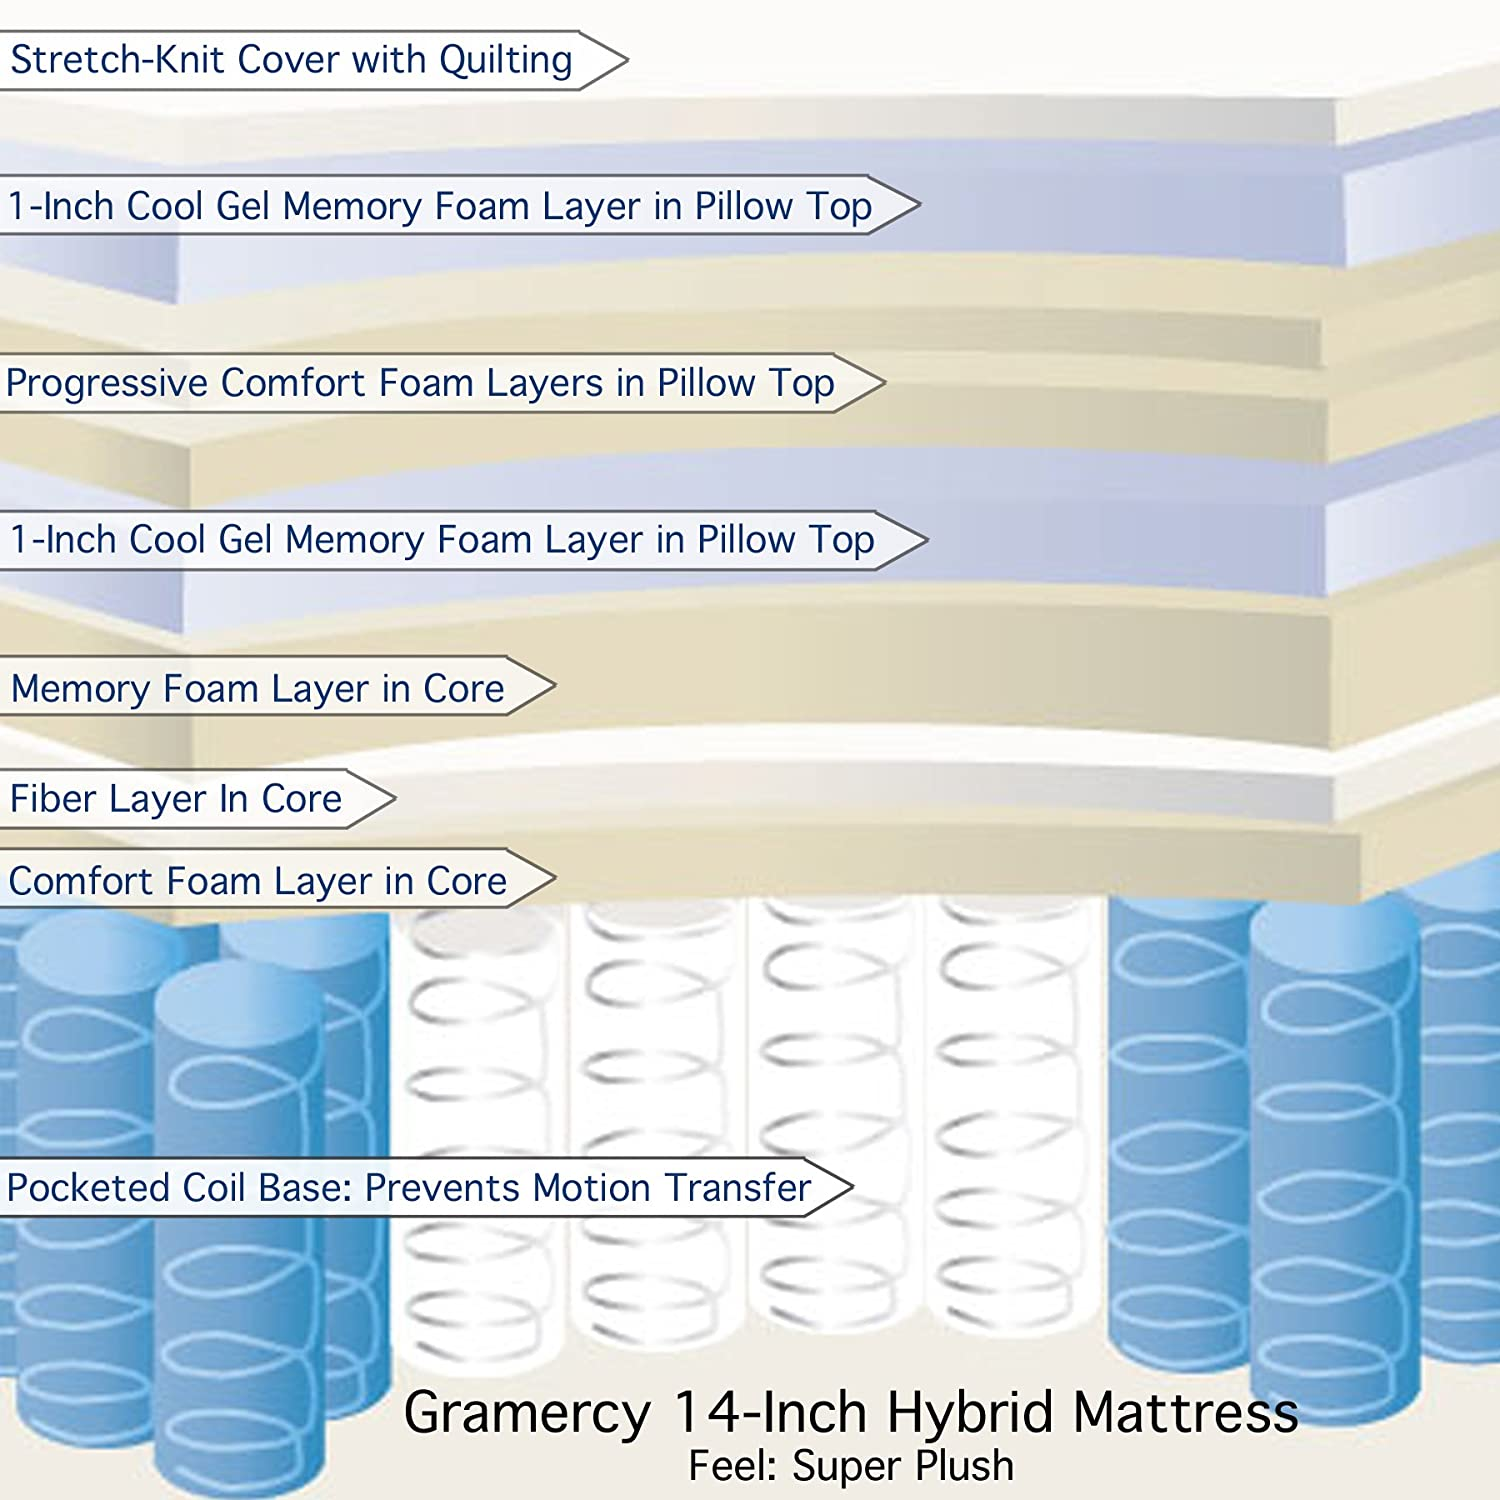 3.	Classic Brands 14 Inch Gramercy Hybrid Cool Gel Memory Foam and Innerspring Mattress